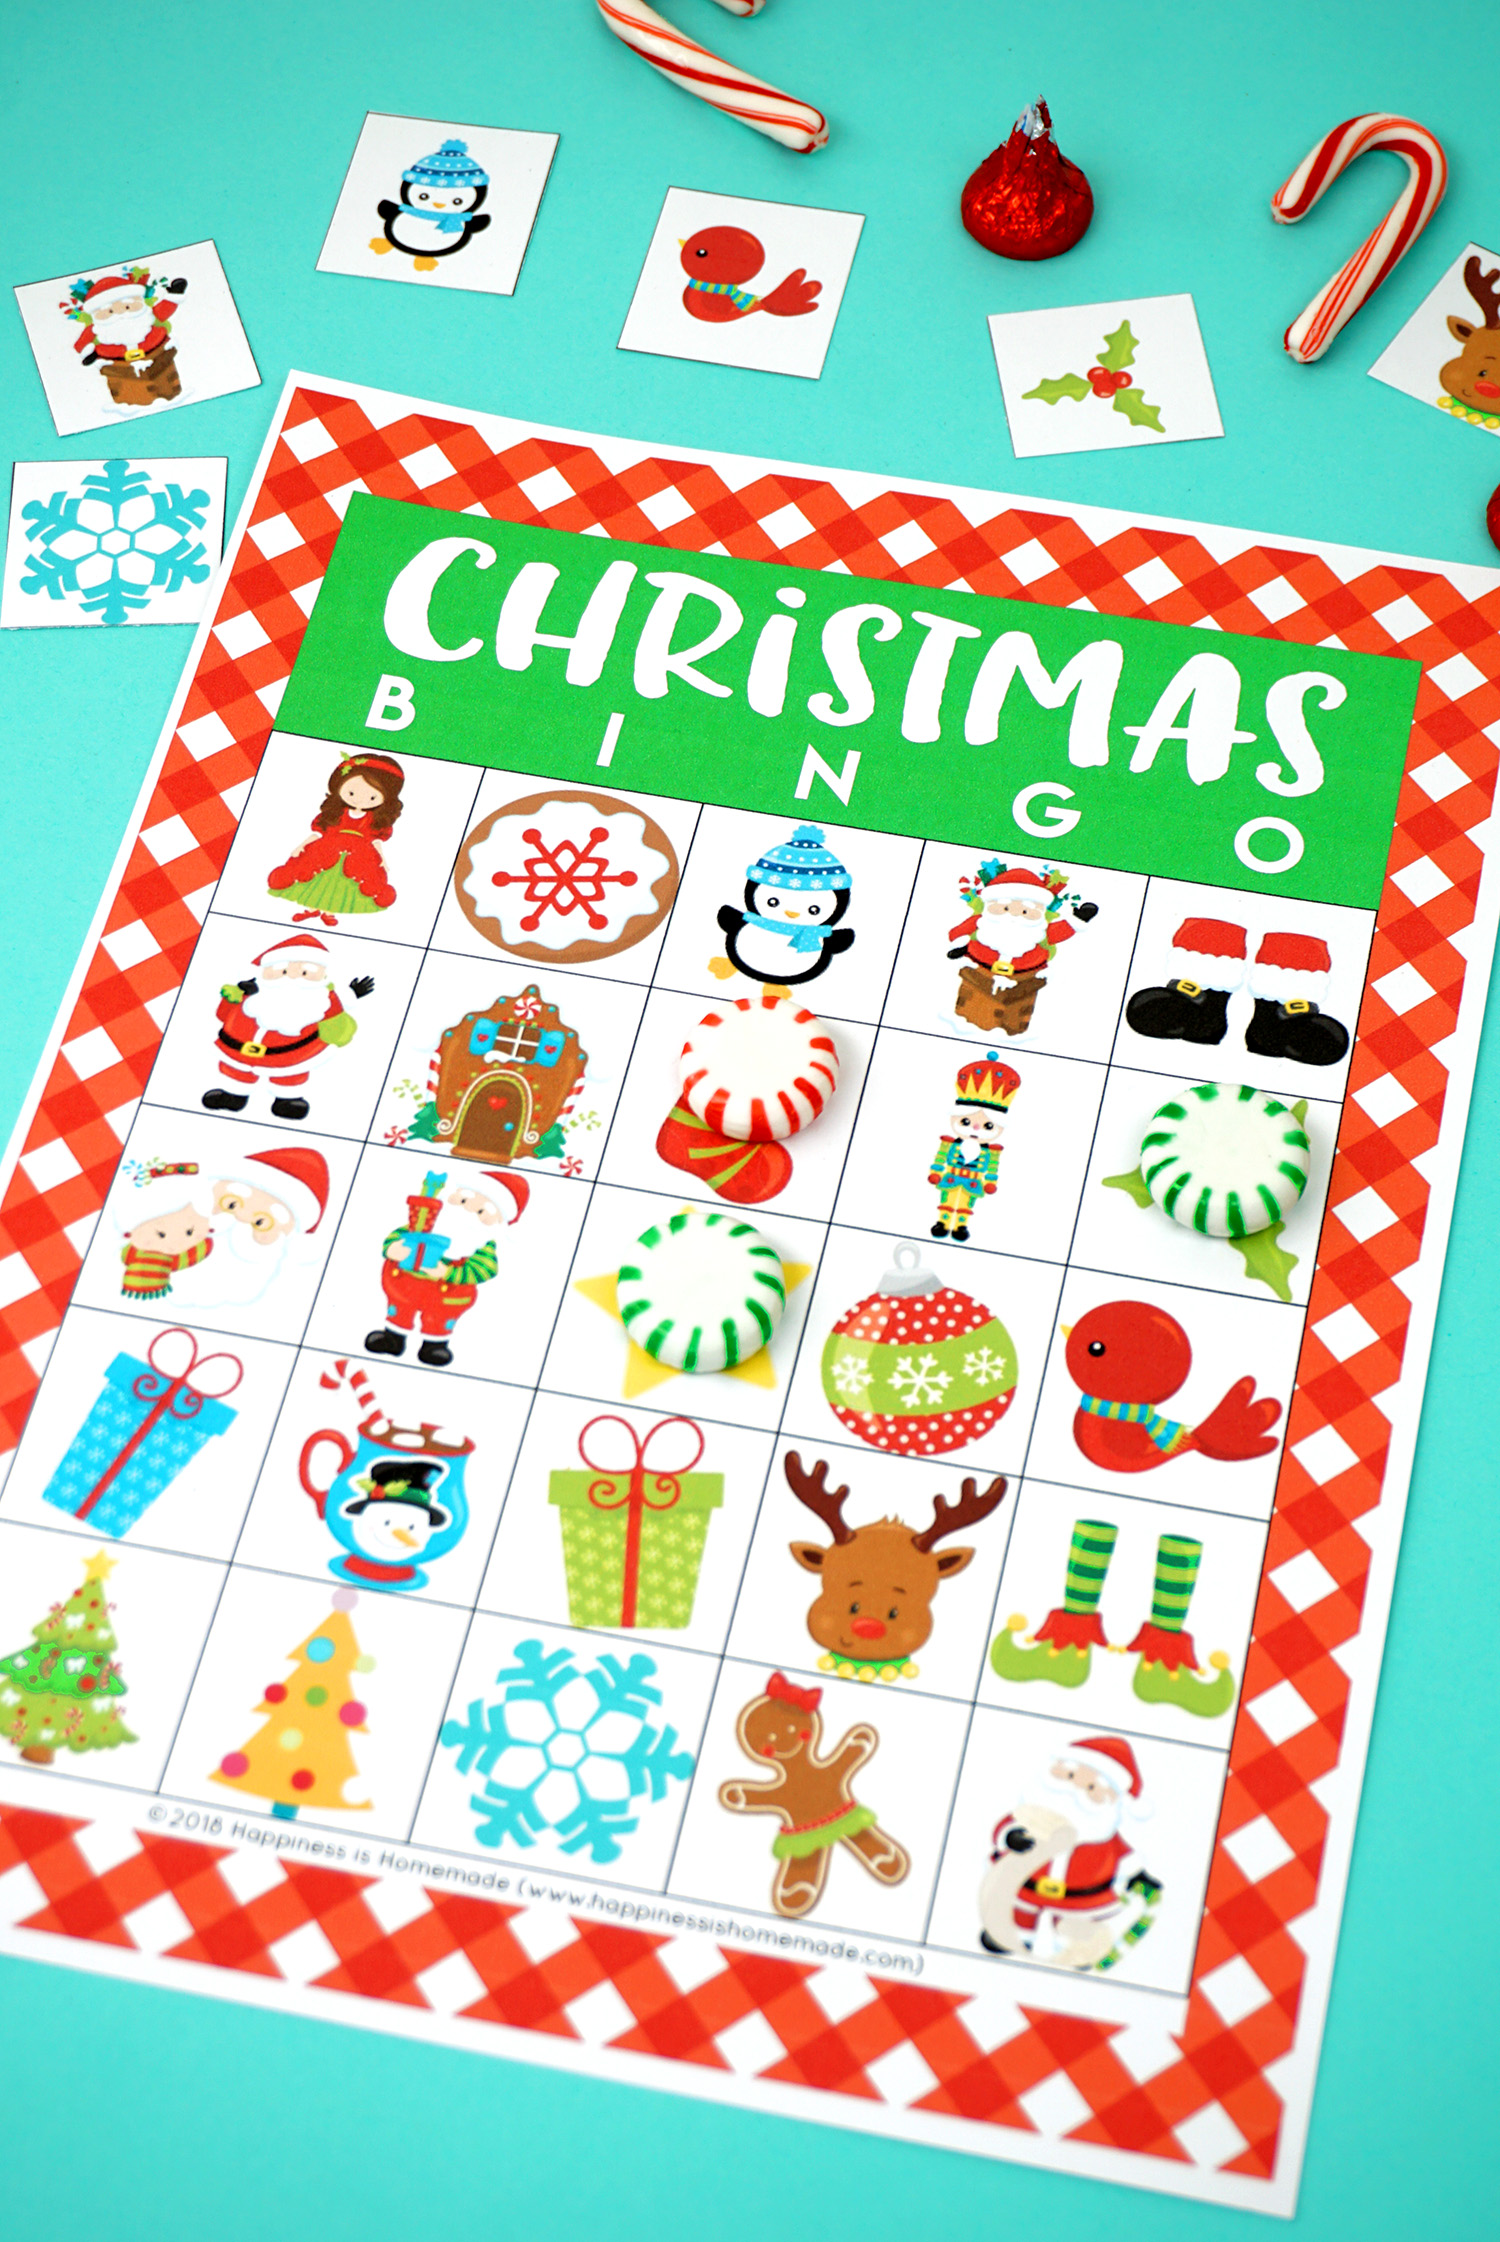 photo relating to Printable Christmas Images titled Printable Xmas Bingo Match - Joy is Do-it-yourself